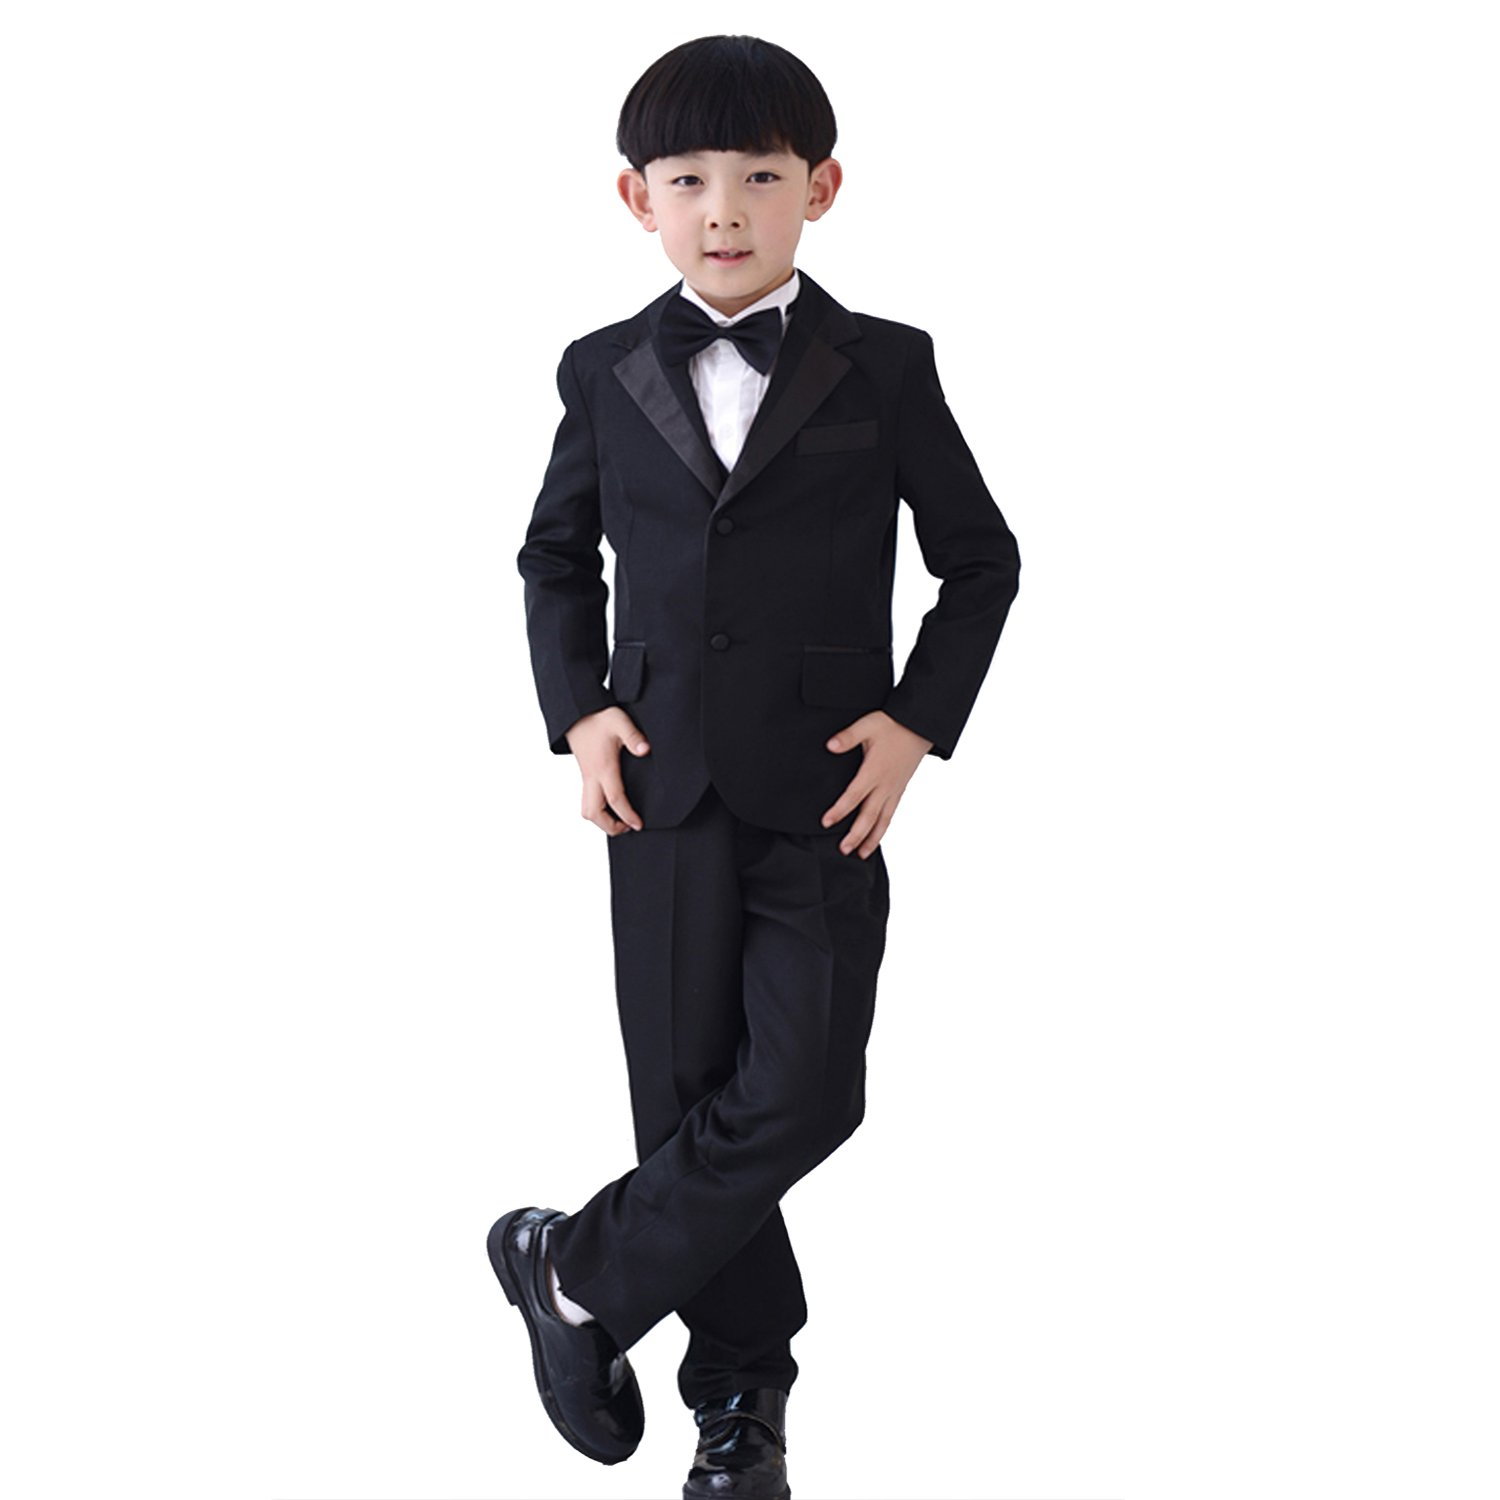 7 Pcs Boys Formal Blazer Children Tuxedo Ring Bearer Wedding Party Suit Black (1-2 Years)